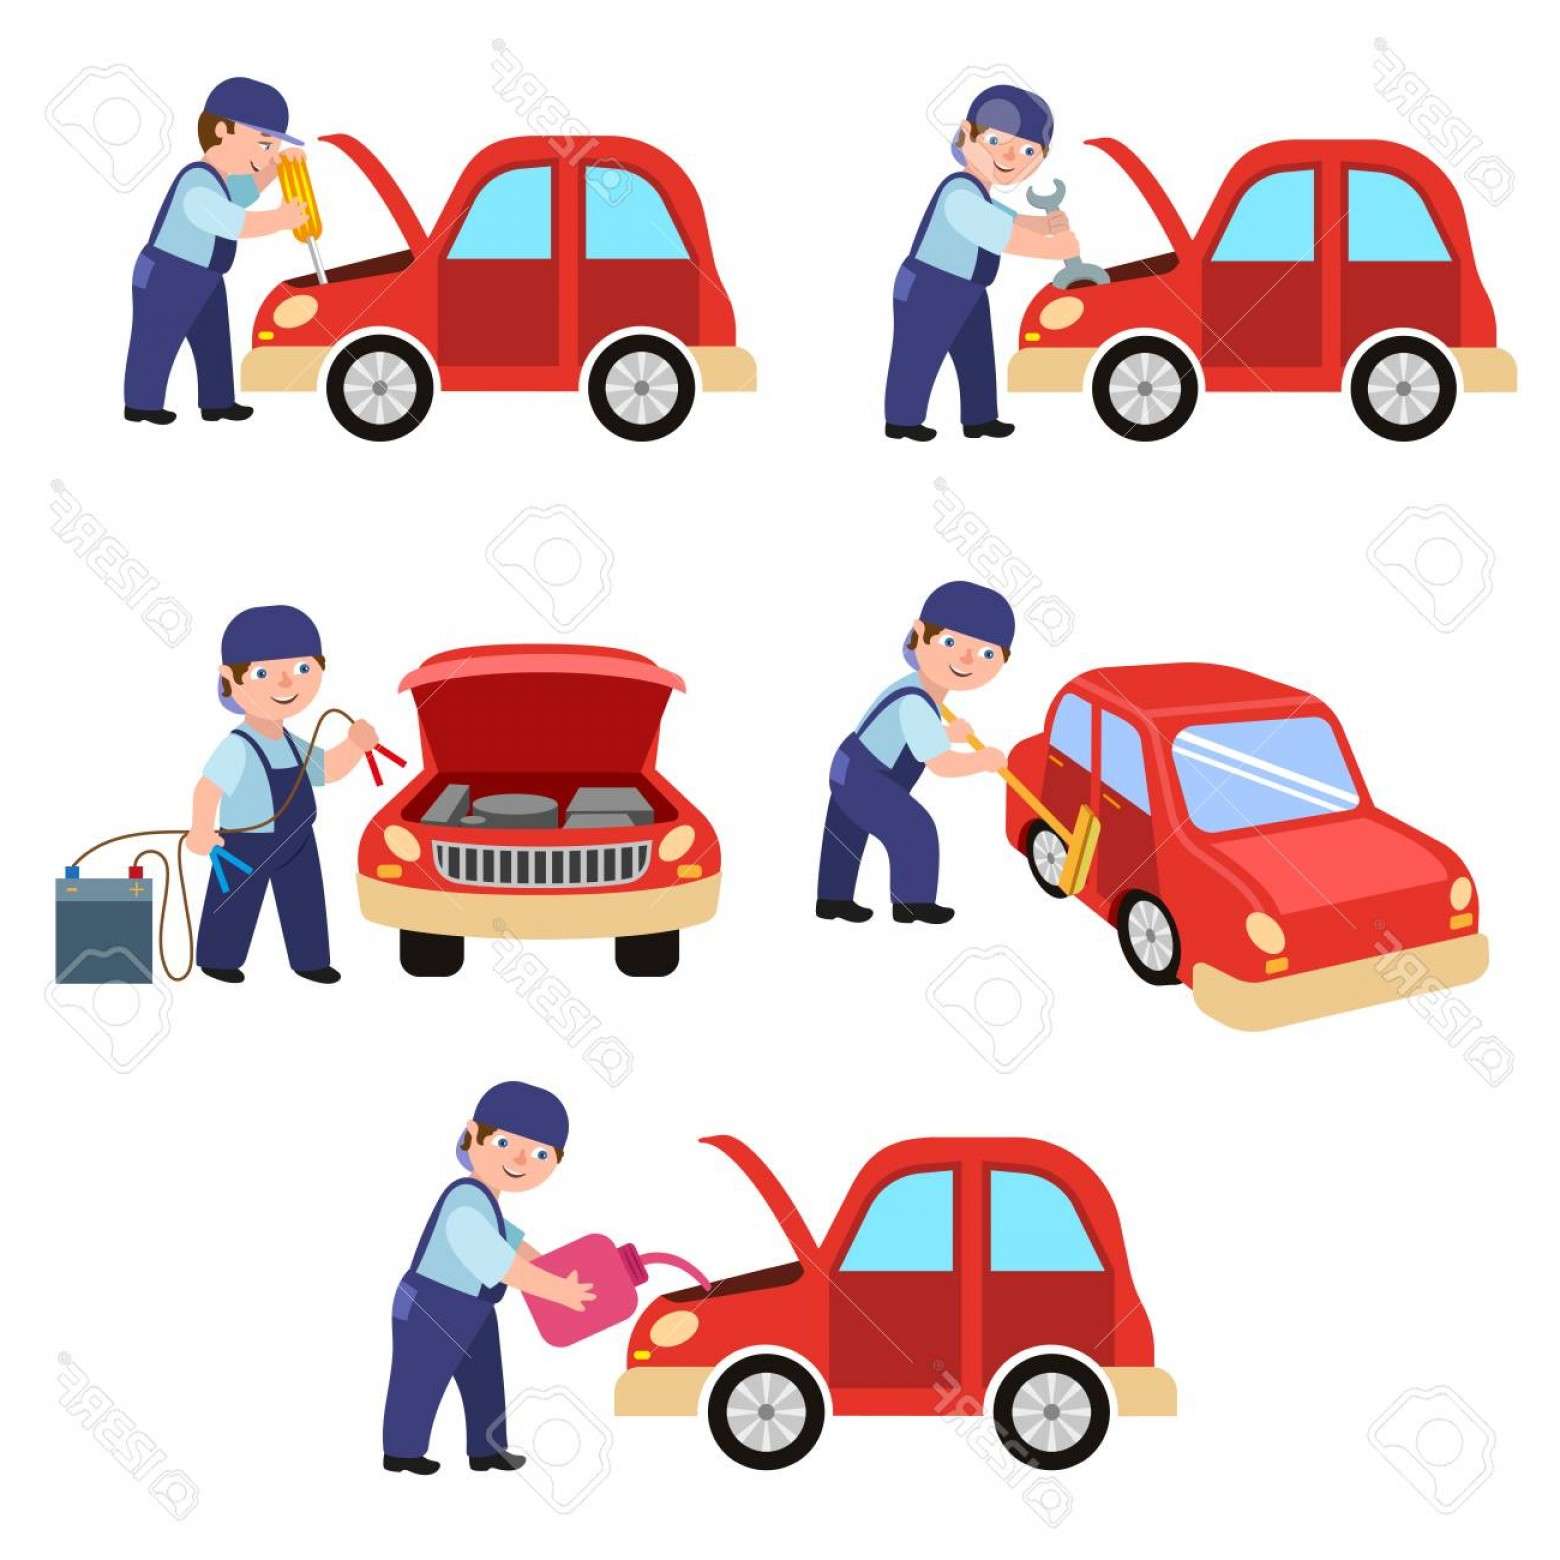 Fixing Car Vector: Photostock Vector Auto Mechanic Working In Car Service Repair And Maintenance Workshop Cartoon Vector Illustration Iso